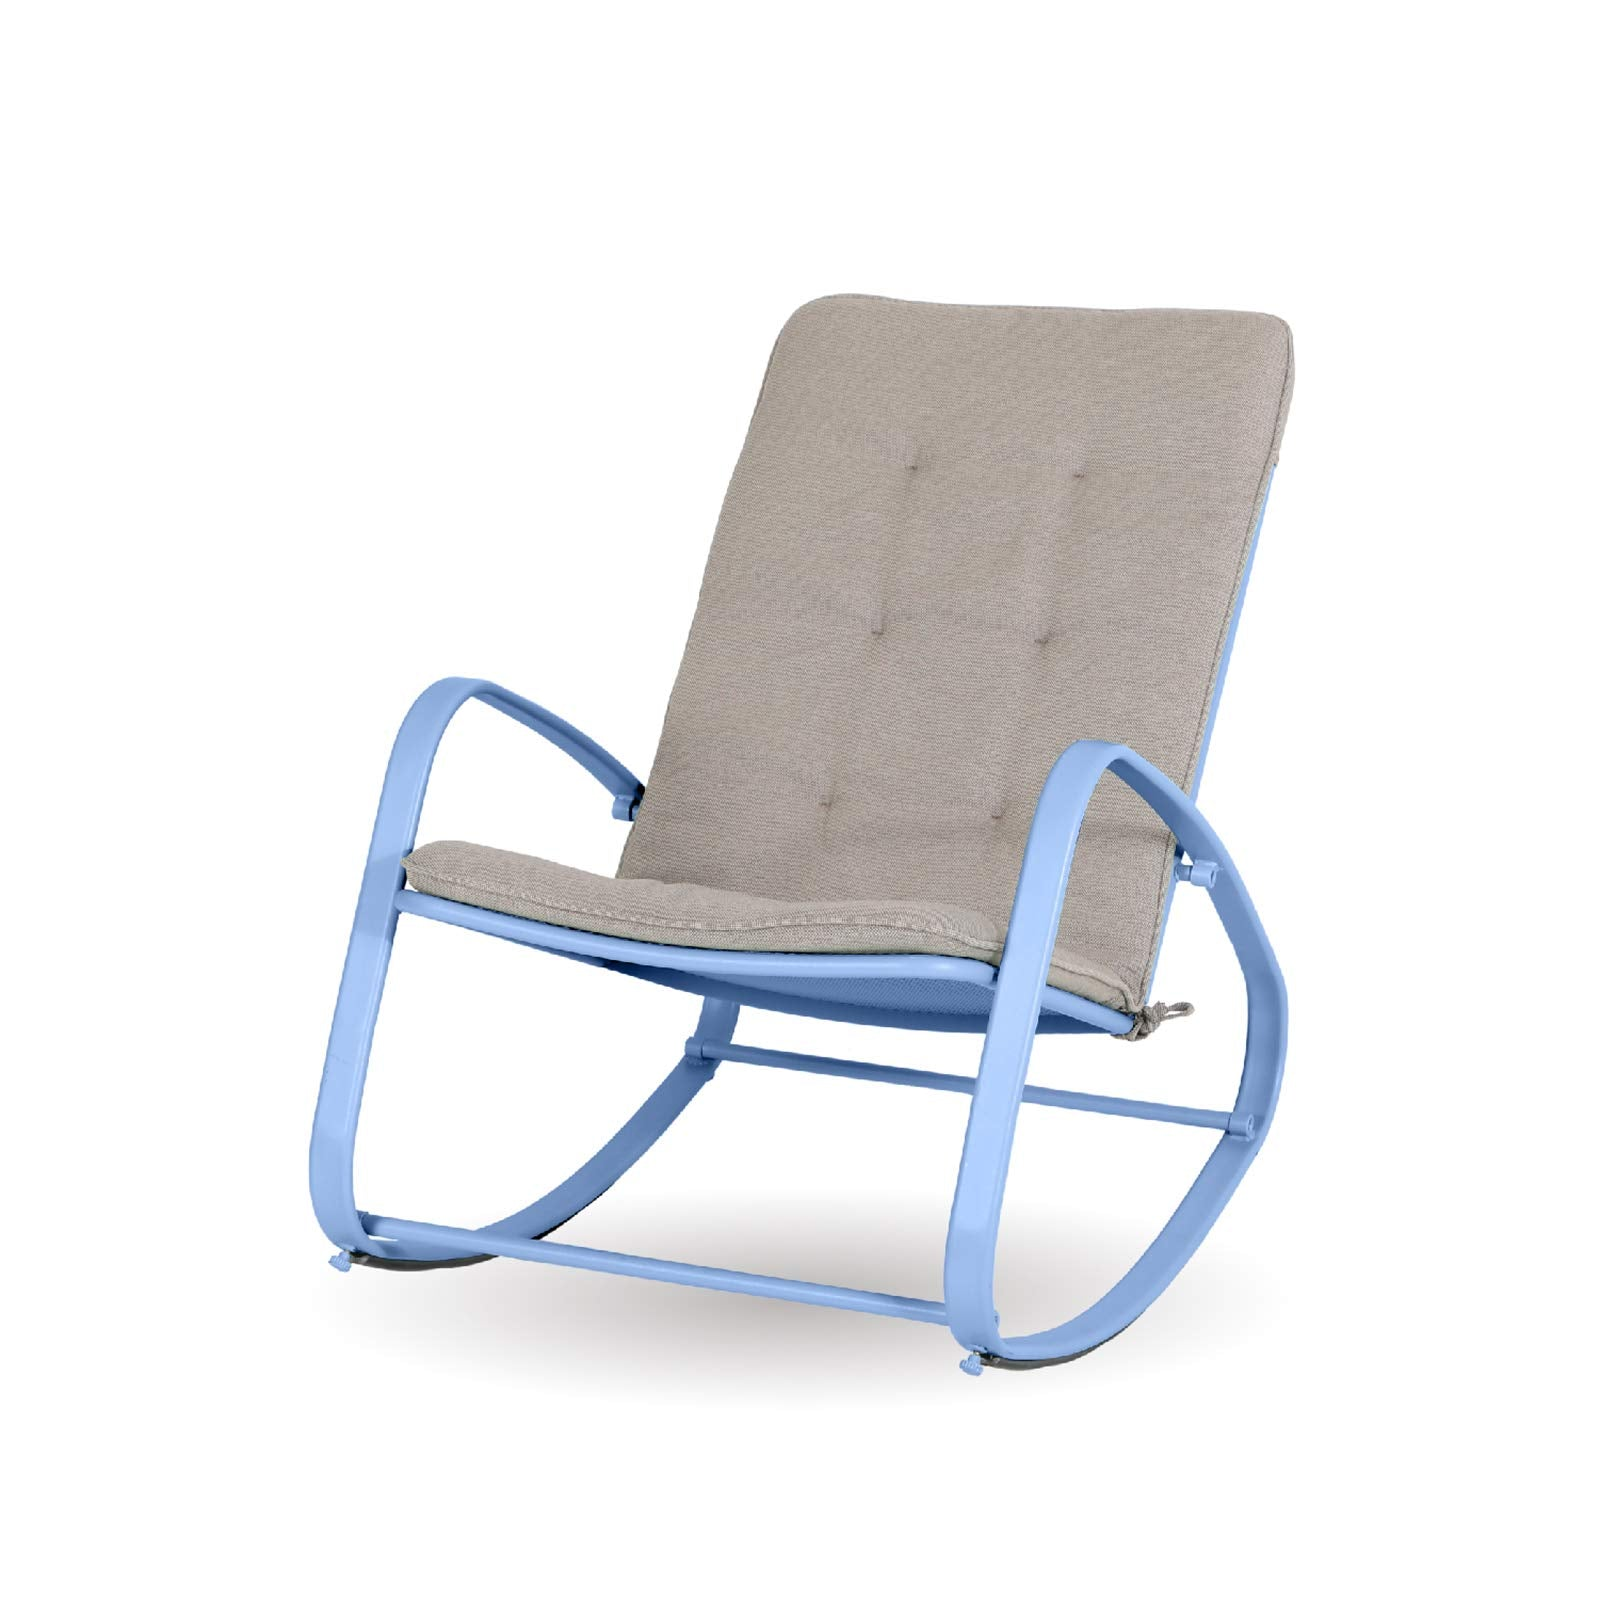 Alphamarts coupon: Sophia & William Outdoor Patio Rocking Chair Padded Steel Rocker Chairs Support 300lbs Blue